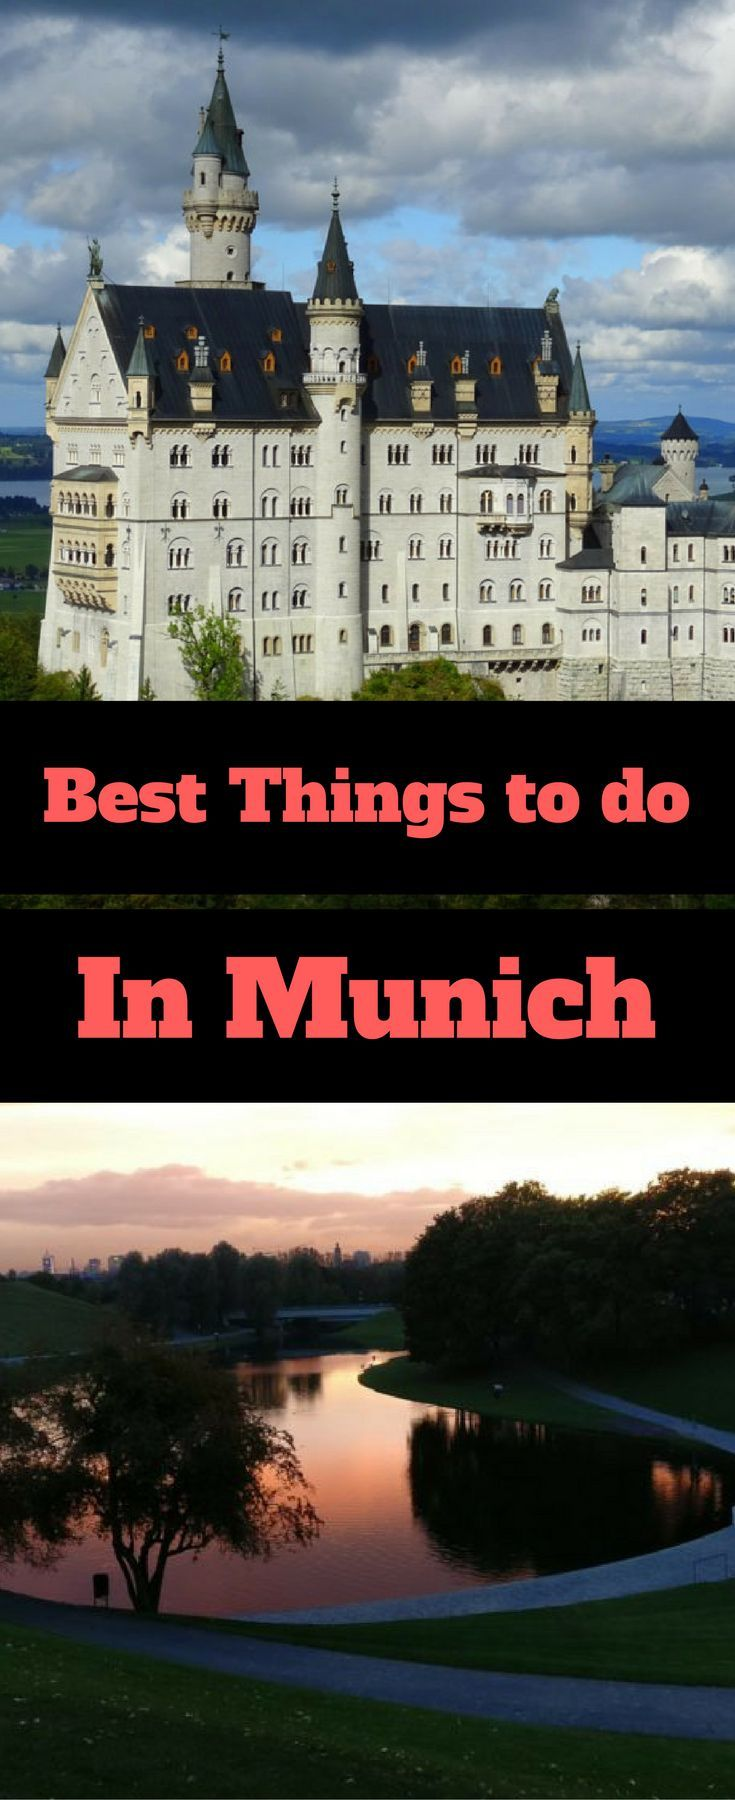 Travel guide to Munich | Best things to do in Munich | Top things to do in Munich | What to see in Munich | Travel to Munich | Visit Munich | Walking tour in Munich | Best things to do in Bavaria | Bavaria Castles | What to see in Munich | Munich travel guide | city breaks | Travel to Germany | Visit Germany | travel to Bavaria | Visit Bavaria